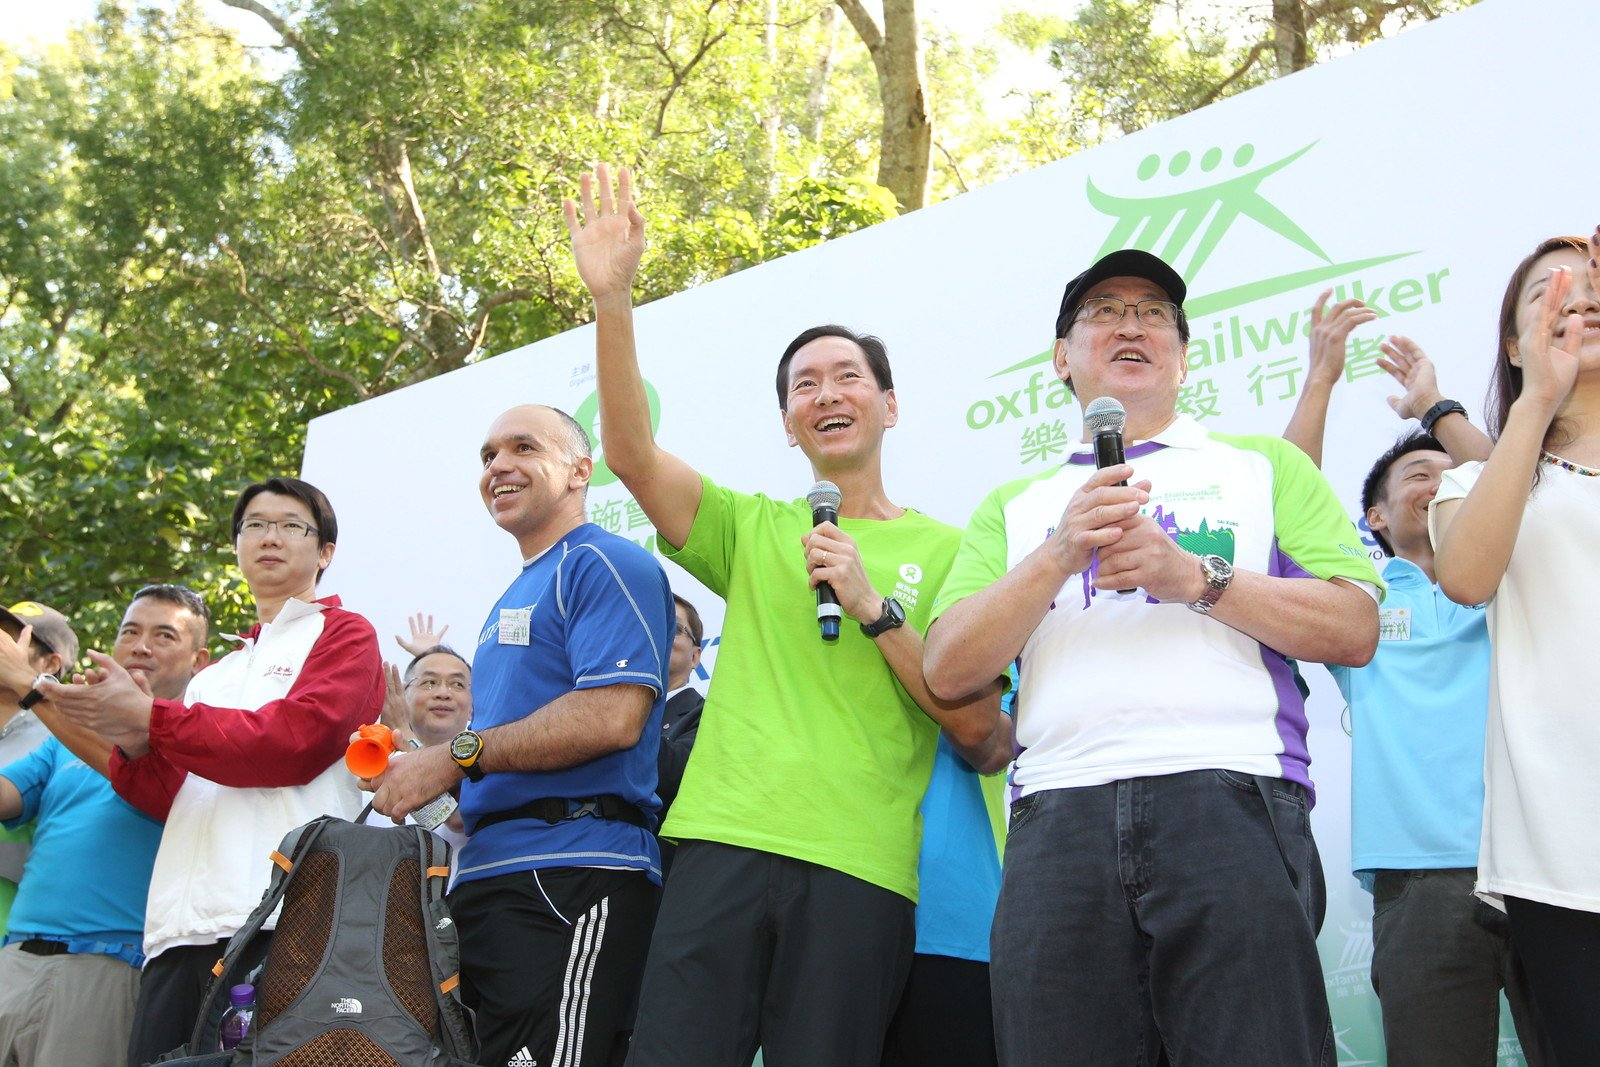 Oxfam Trailwalker Kick-Off Ceremony was held at 11am today and officiated by Mr. Francesco M. Squillacioti, Senior Managing Director, Regional Business Director of Securities Finance, Asia Pacific, State Street Corporation (third from left), Mr. Bernard Chan, Chairman, Oxfam Trailwalker Advisory Committee (fourth from left), Dr York Chow Yat-Ngok, Chairperson, Equal Opportunities Commission (second from right).